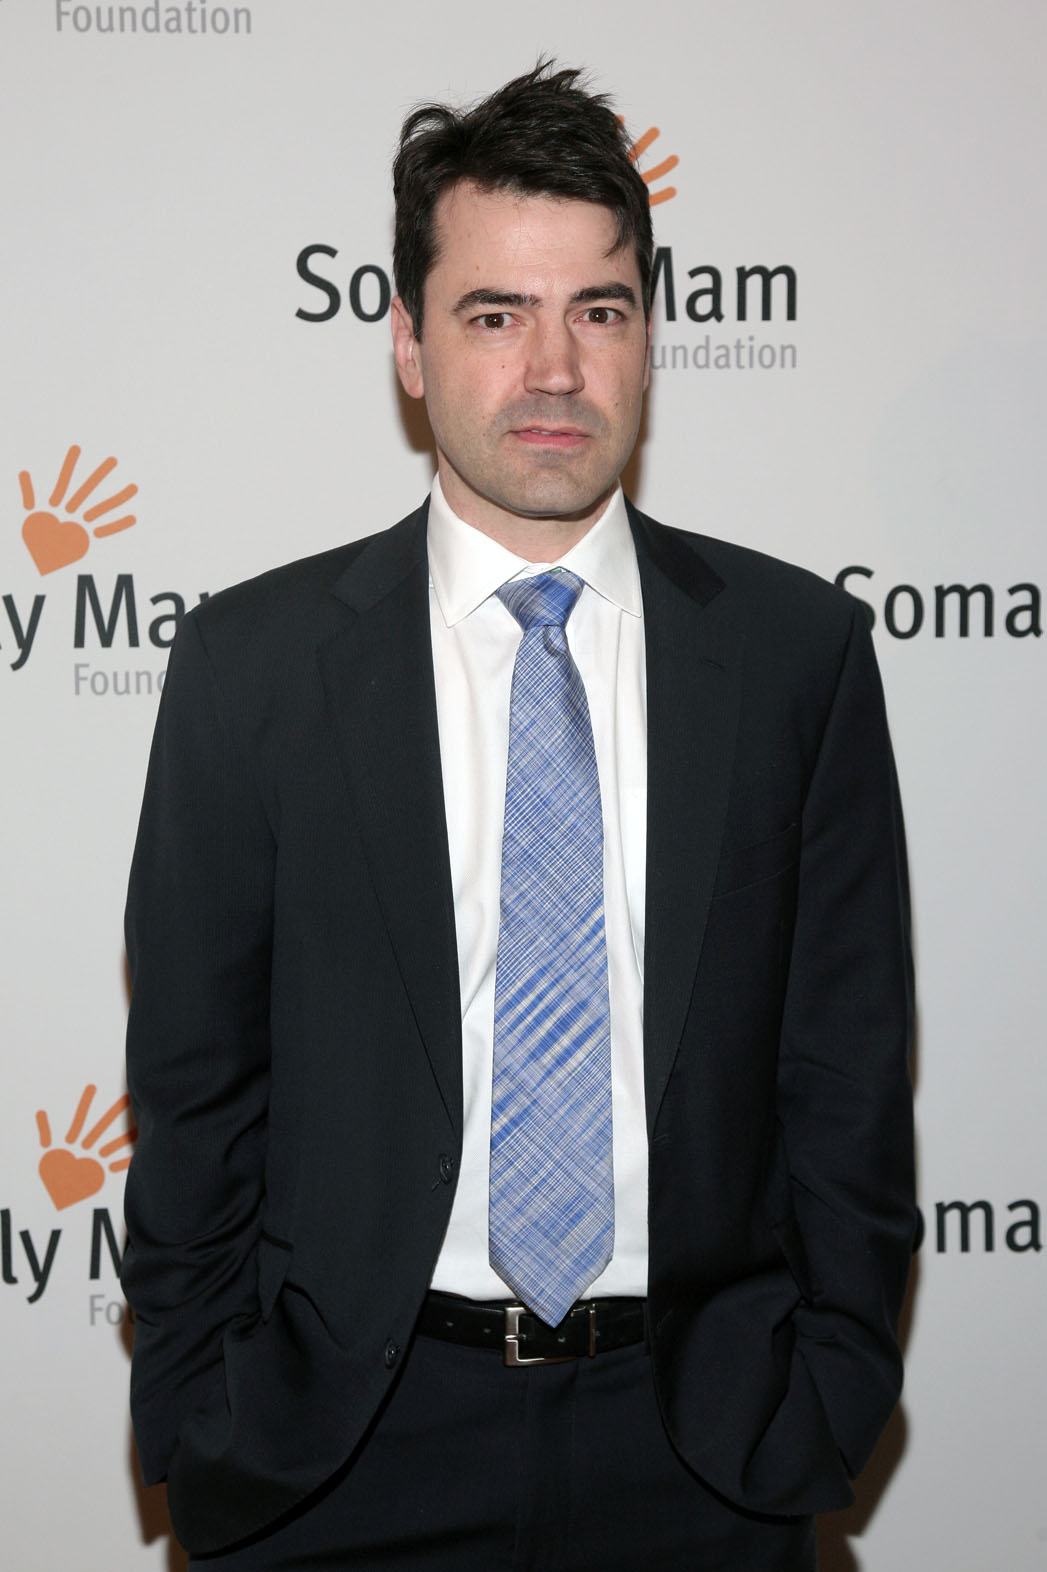 Ron Livingston Headshot - P 2013